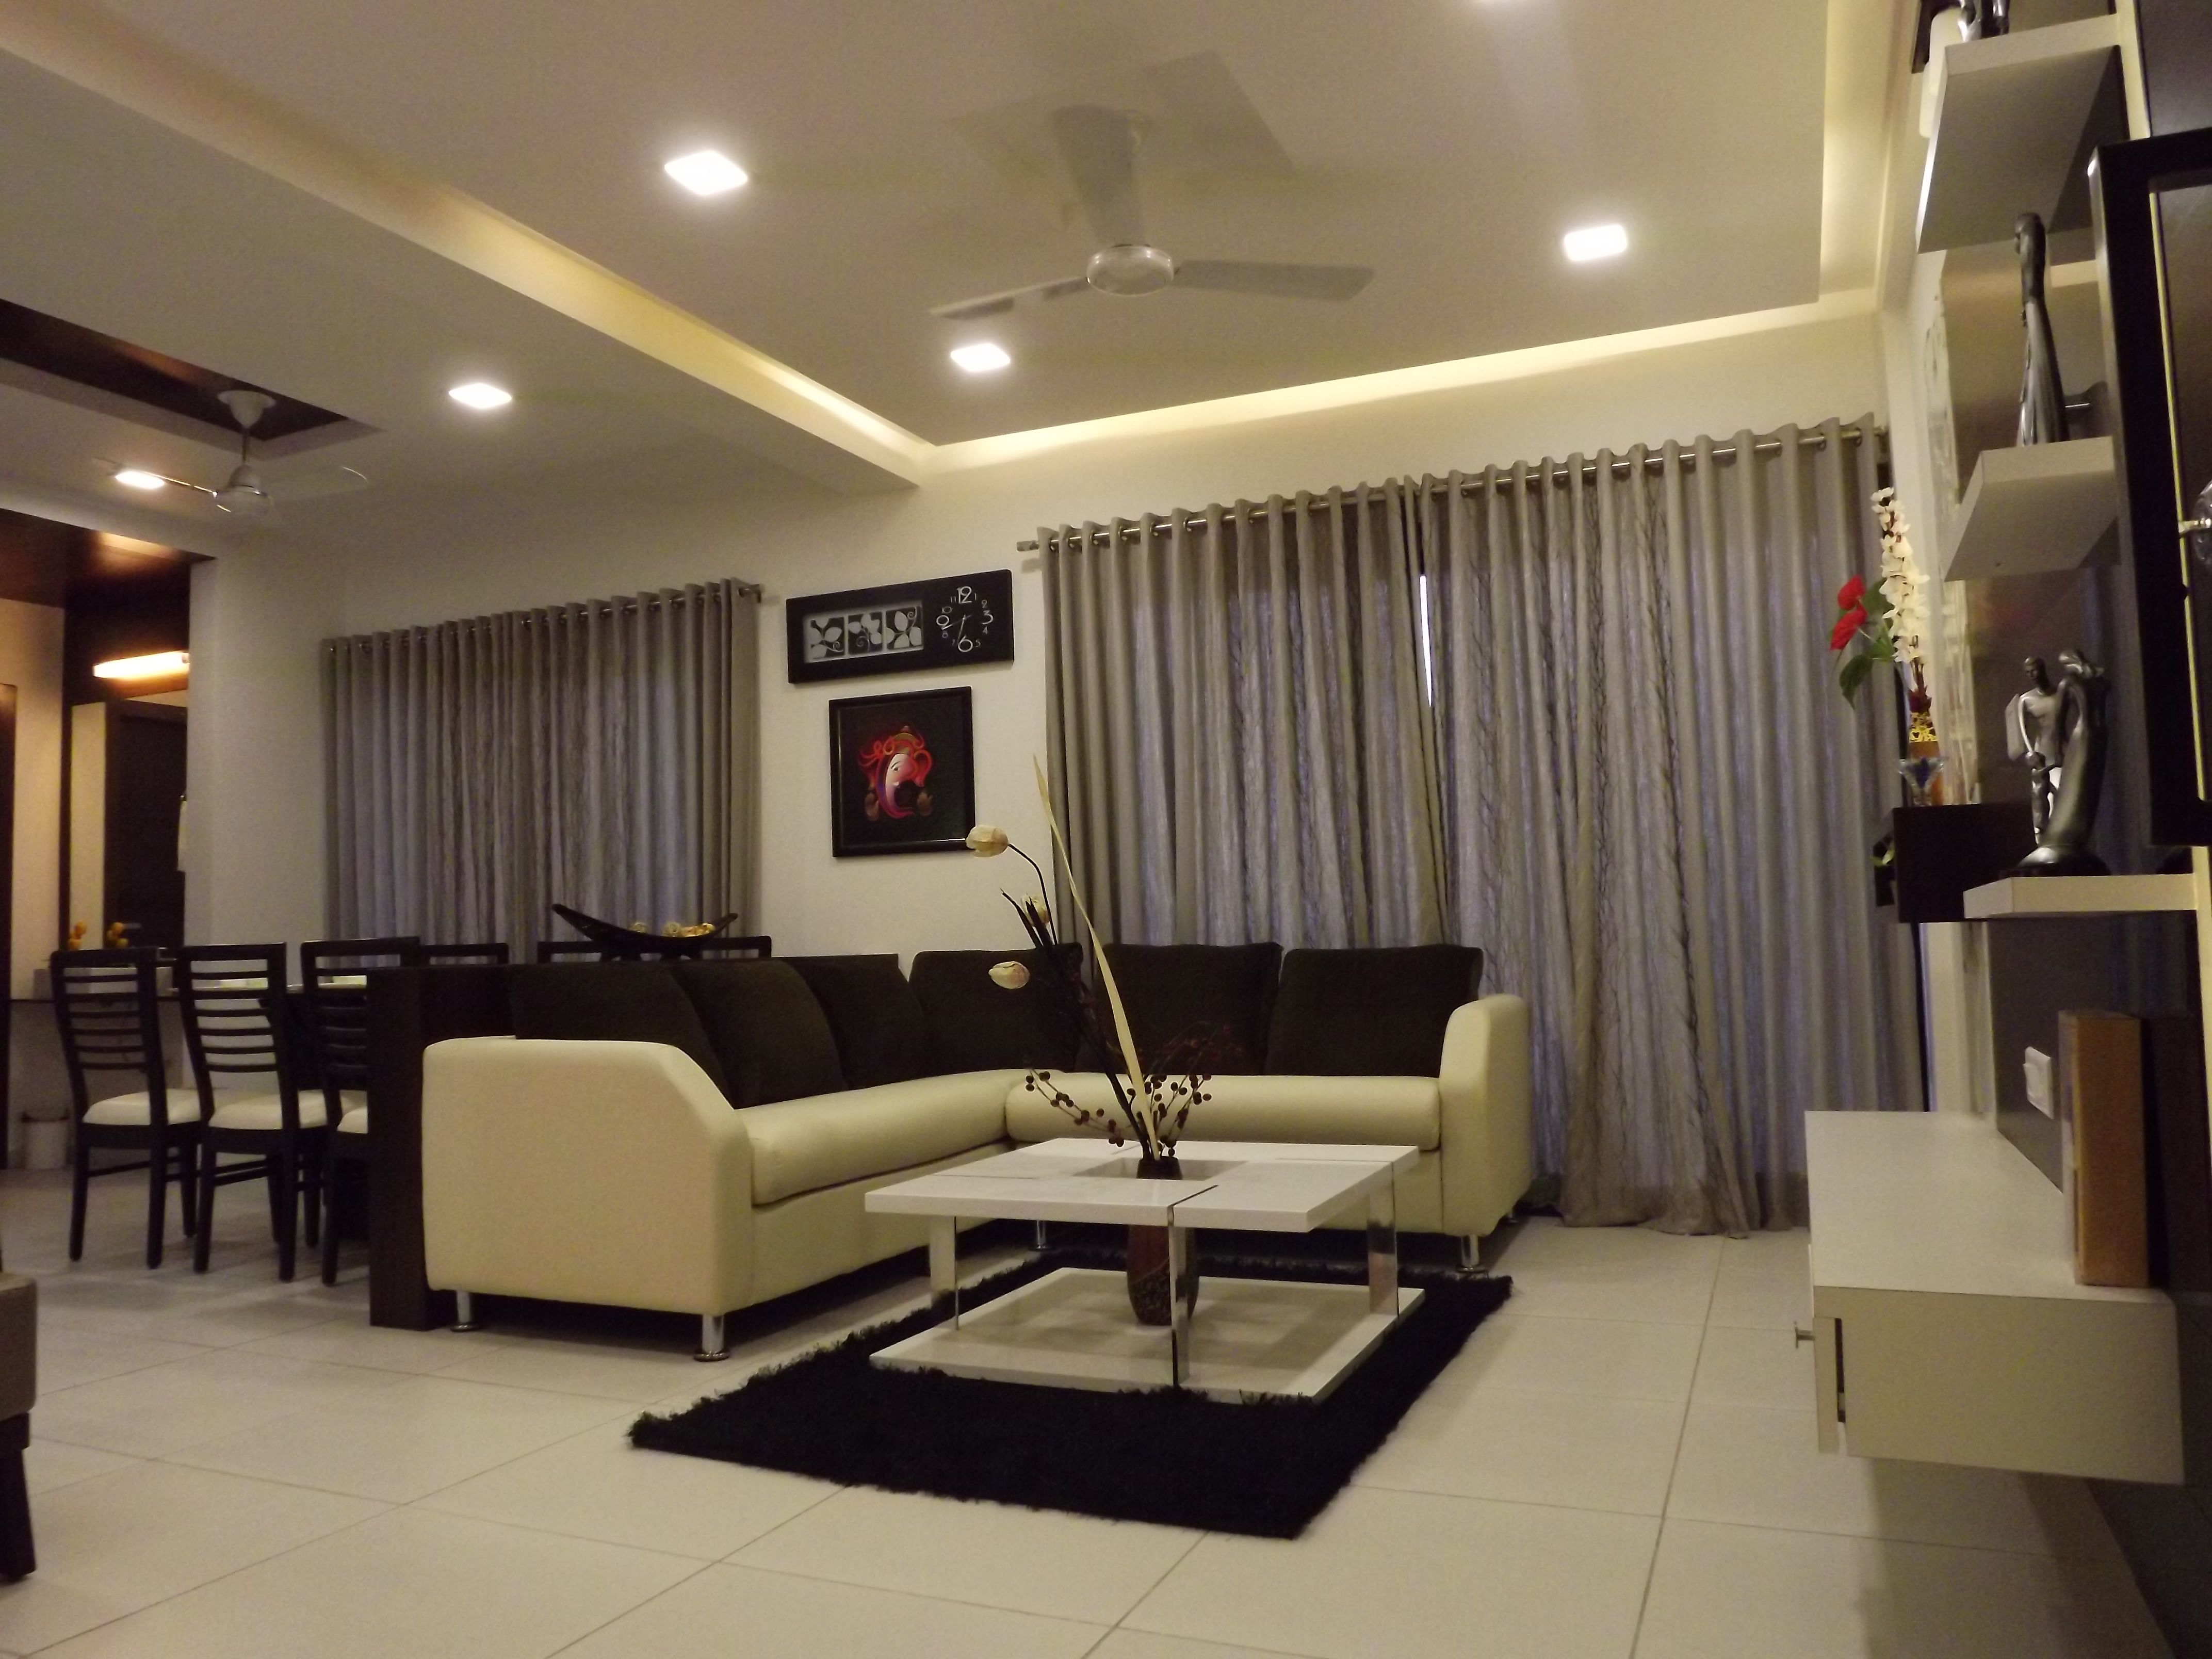 Architecture and interior design projects in India